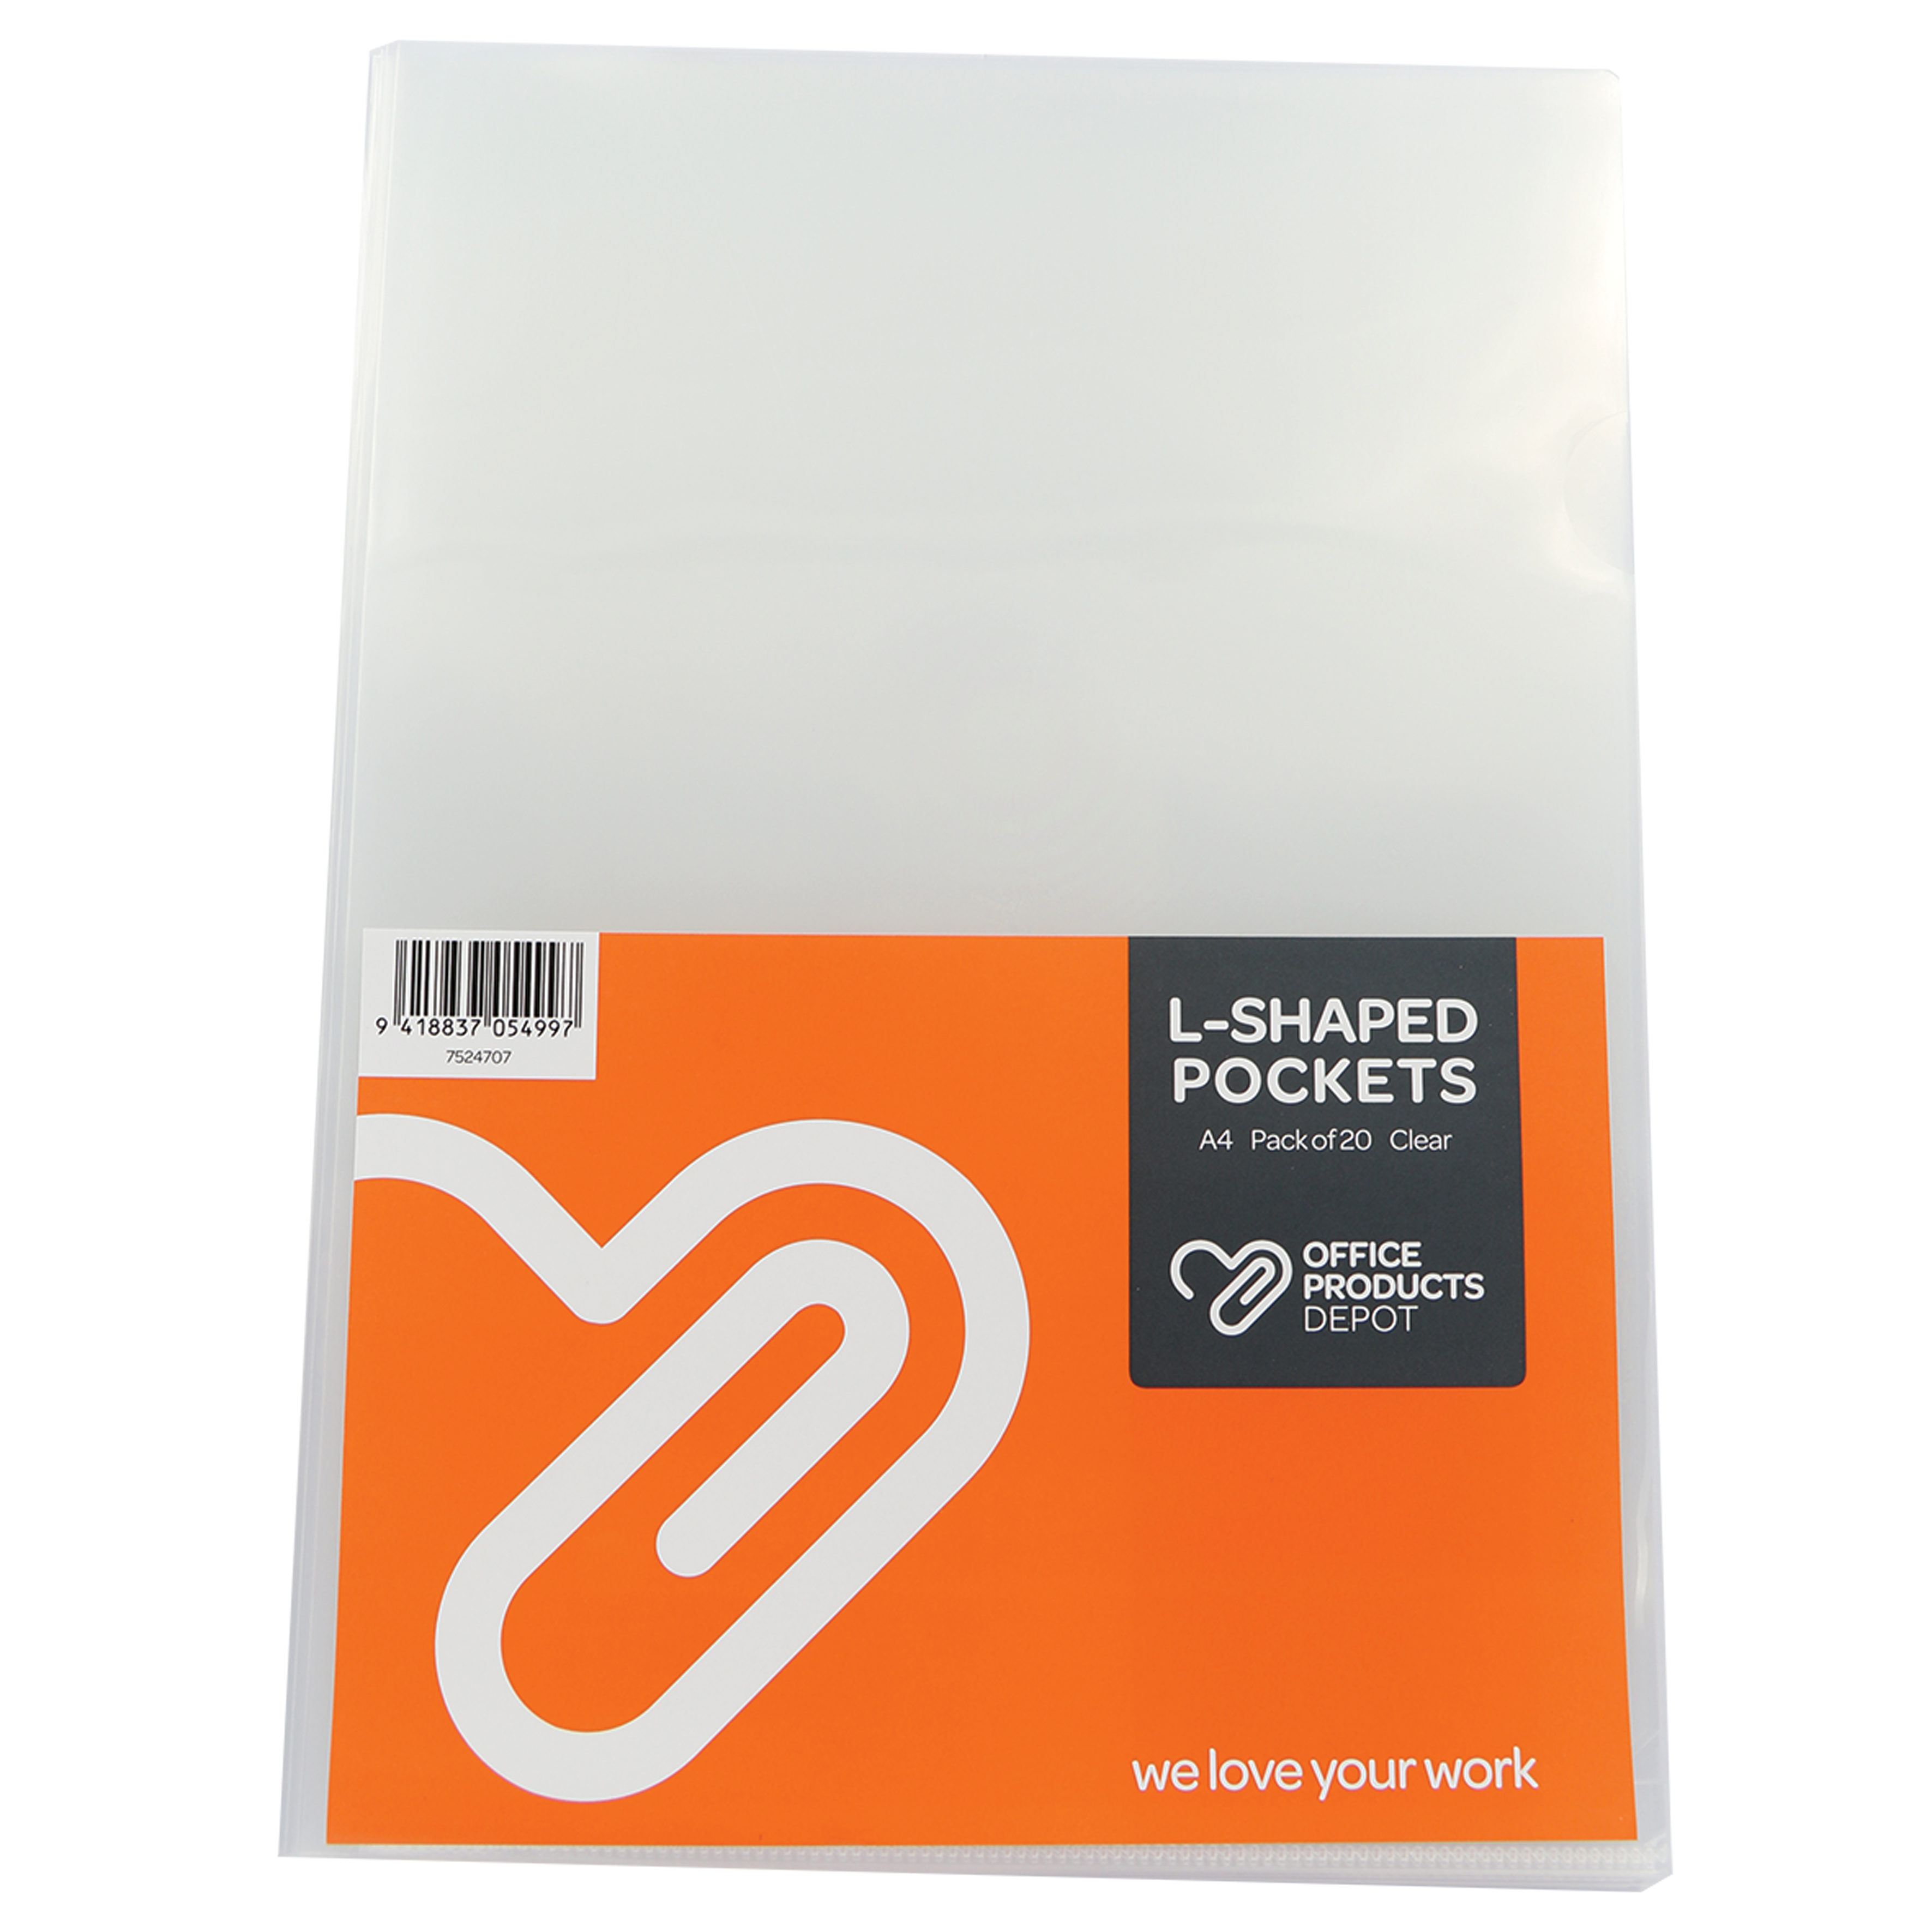 Image for OPD OFFICEWARE L-SHAPED POCKET A4 CLEAR PACK 20 from Bay Office Products Depot